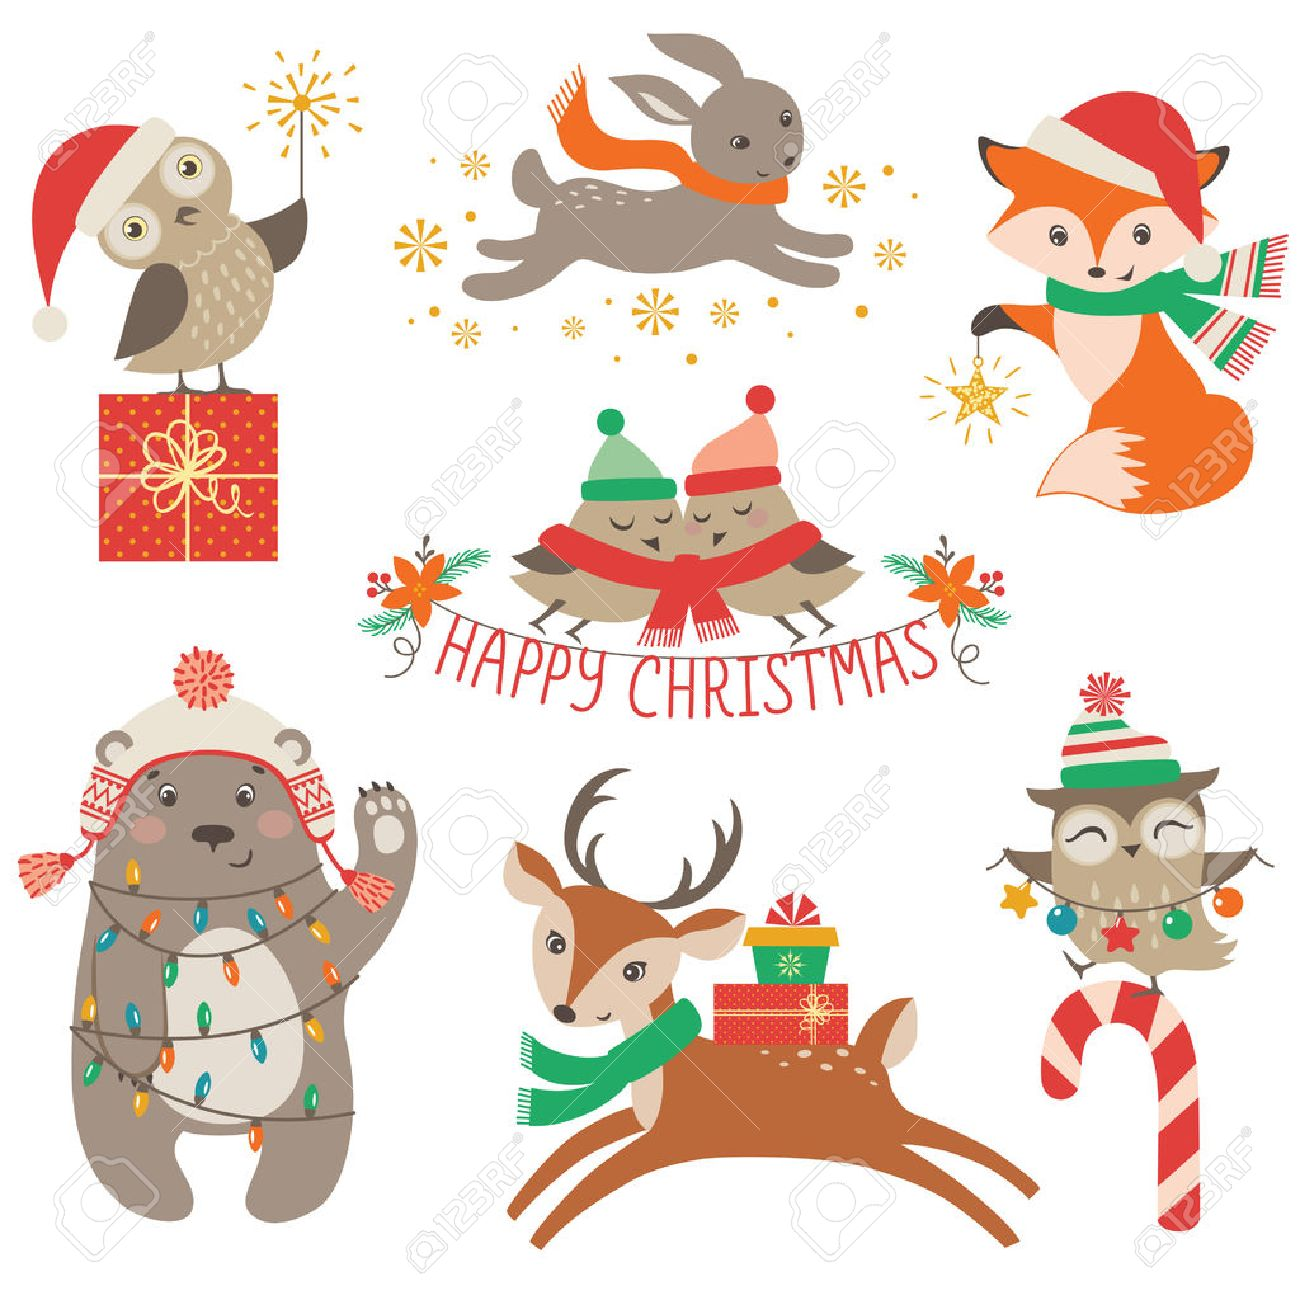 Set of cute Christmas design elements with woodland animals Stock Vector - 47012641